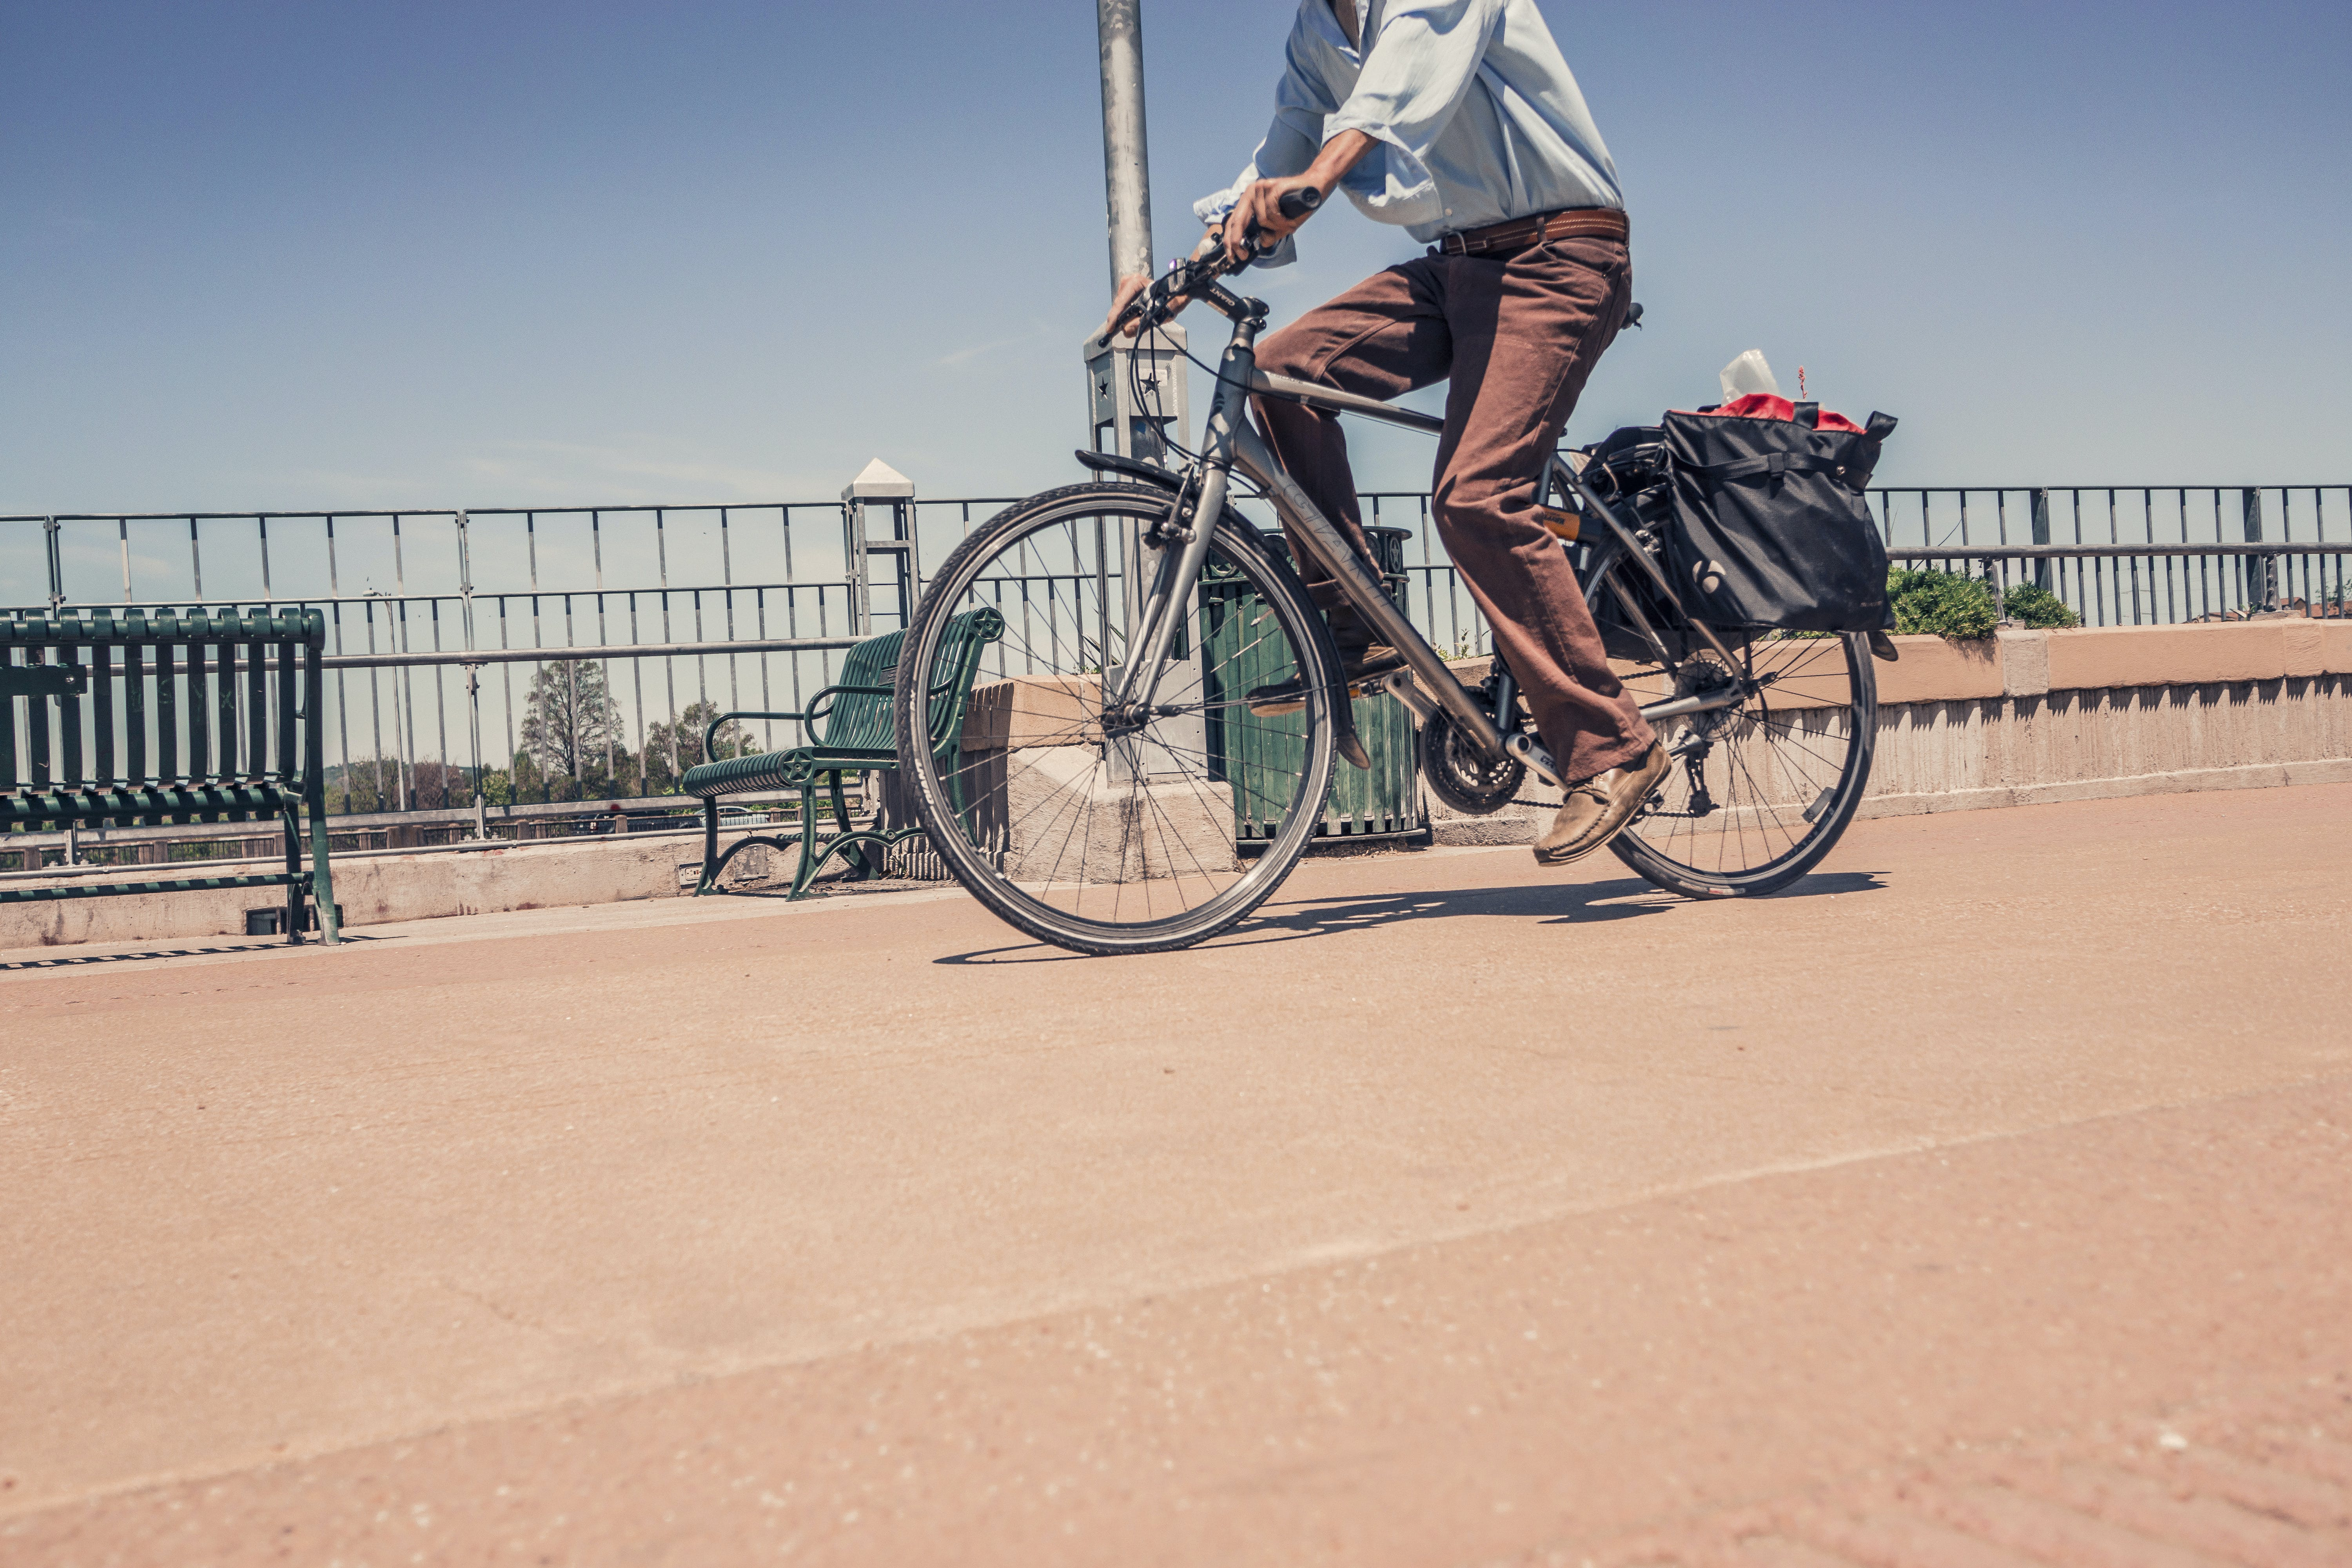 Man Riding Commuter Bike Near Road in Close-up Photography